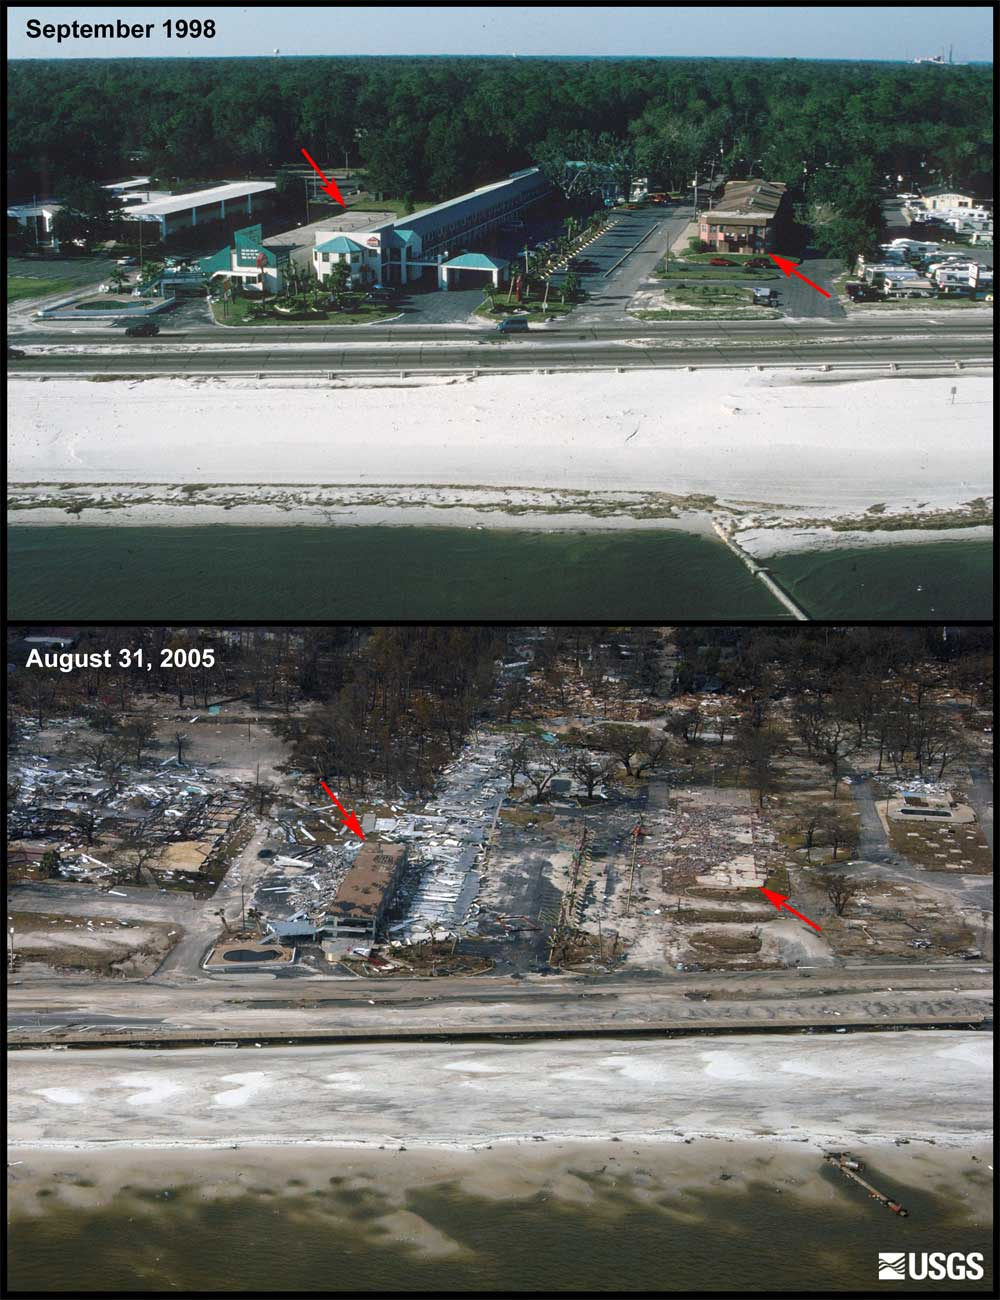 <b>Before and after Hurricane Katrina:</b>In the top image, taken in 1998, notice the Deep South Motel to the left and the apartment building to the right. The bottom image shows the same location on Aug. 31, 2005, two days after Hurricane Katrina made landfall. A small portion of the motel is only structure left standing. (Photo: USGS)